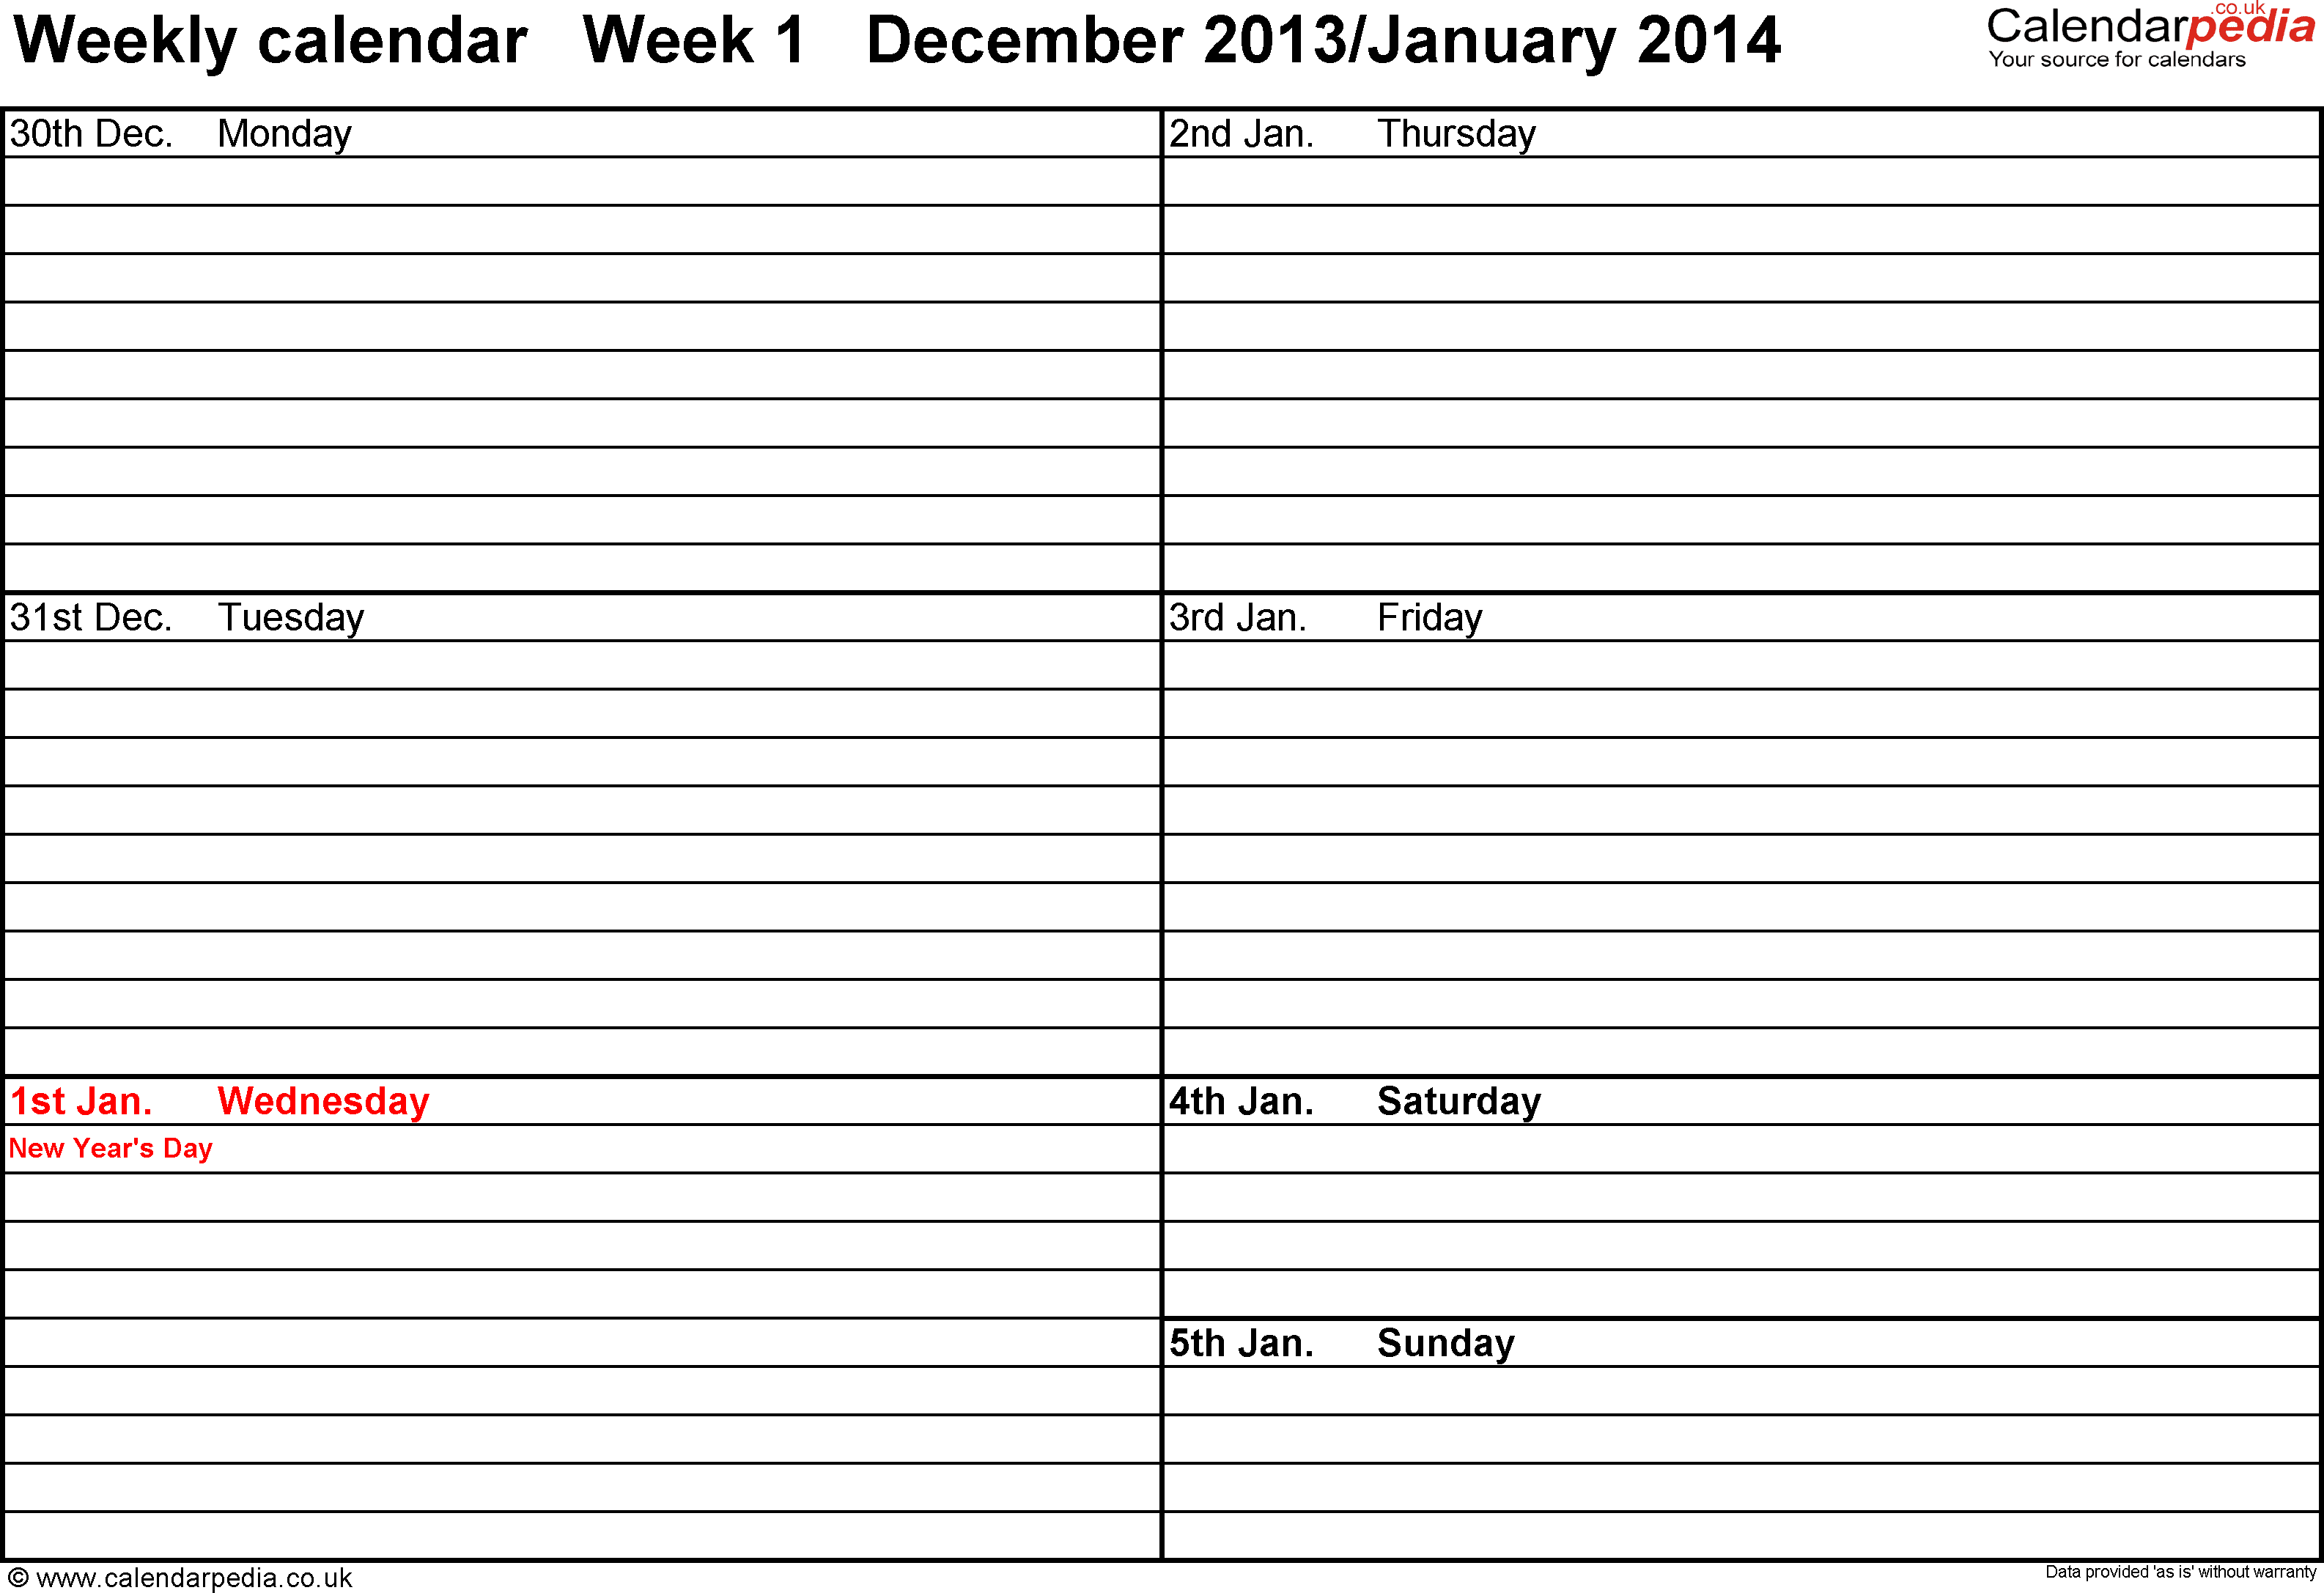 Excel template 3: Weekly calendar 2014, landscape orientation, 53 pages (1 calendar week on 1 page), week divided into 2 columns